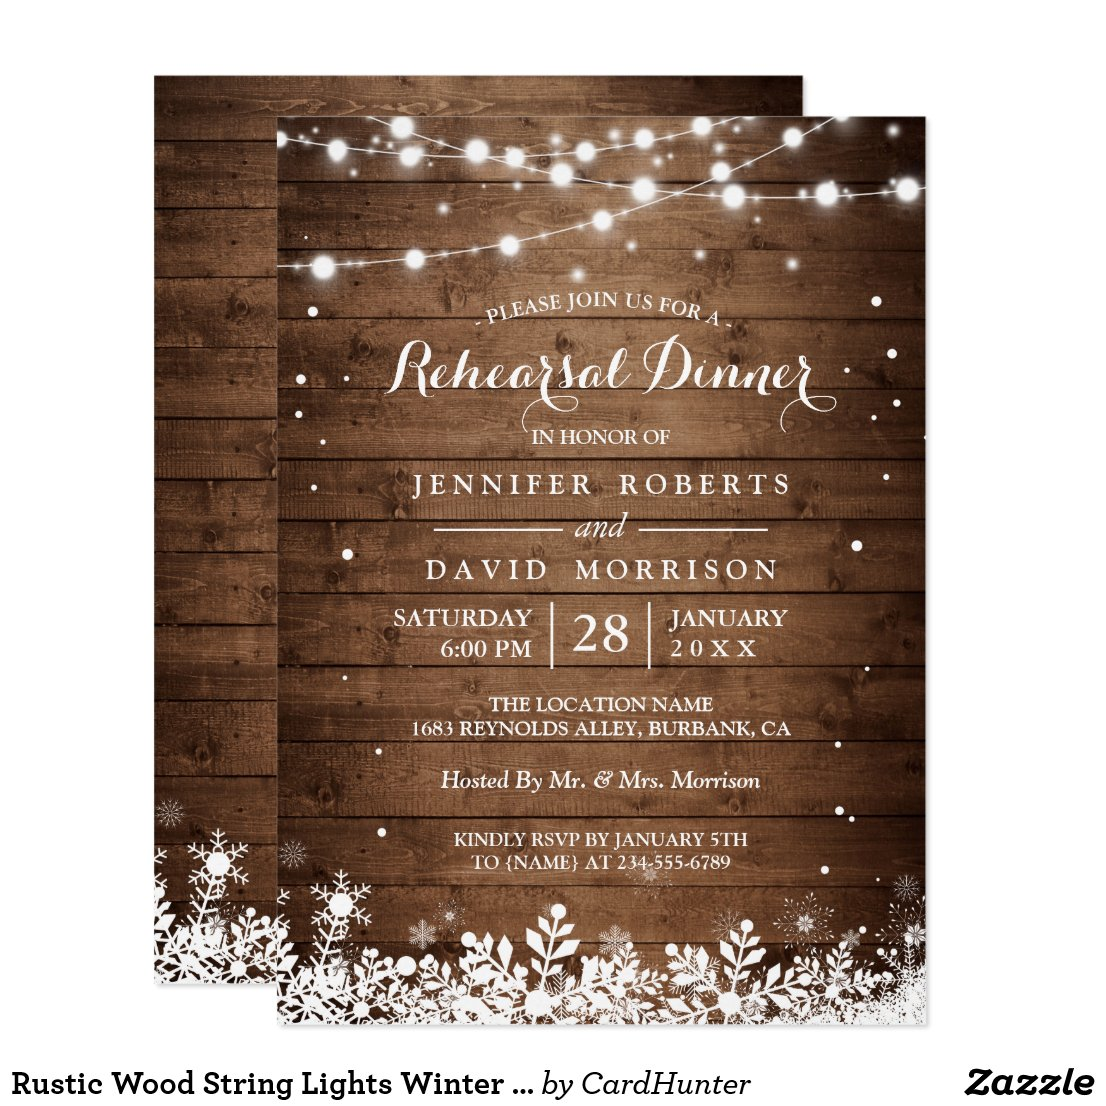 Rustic Wood String Lights Winter Rehearsal Dinner Invitation